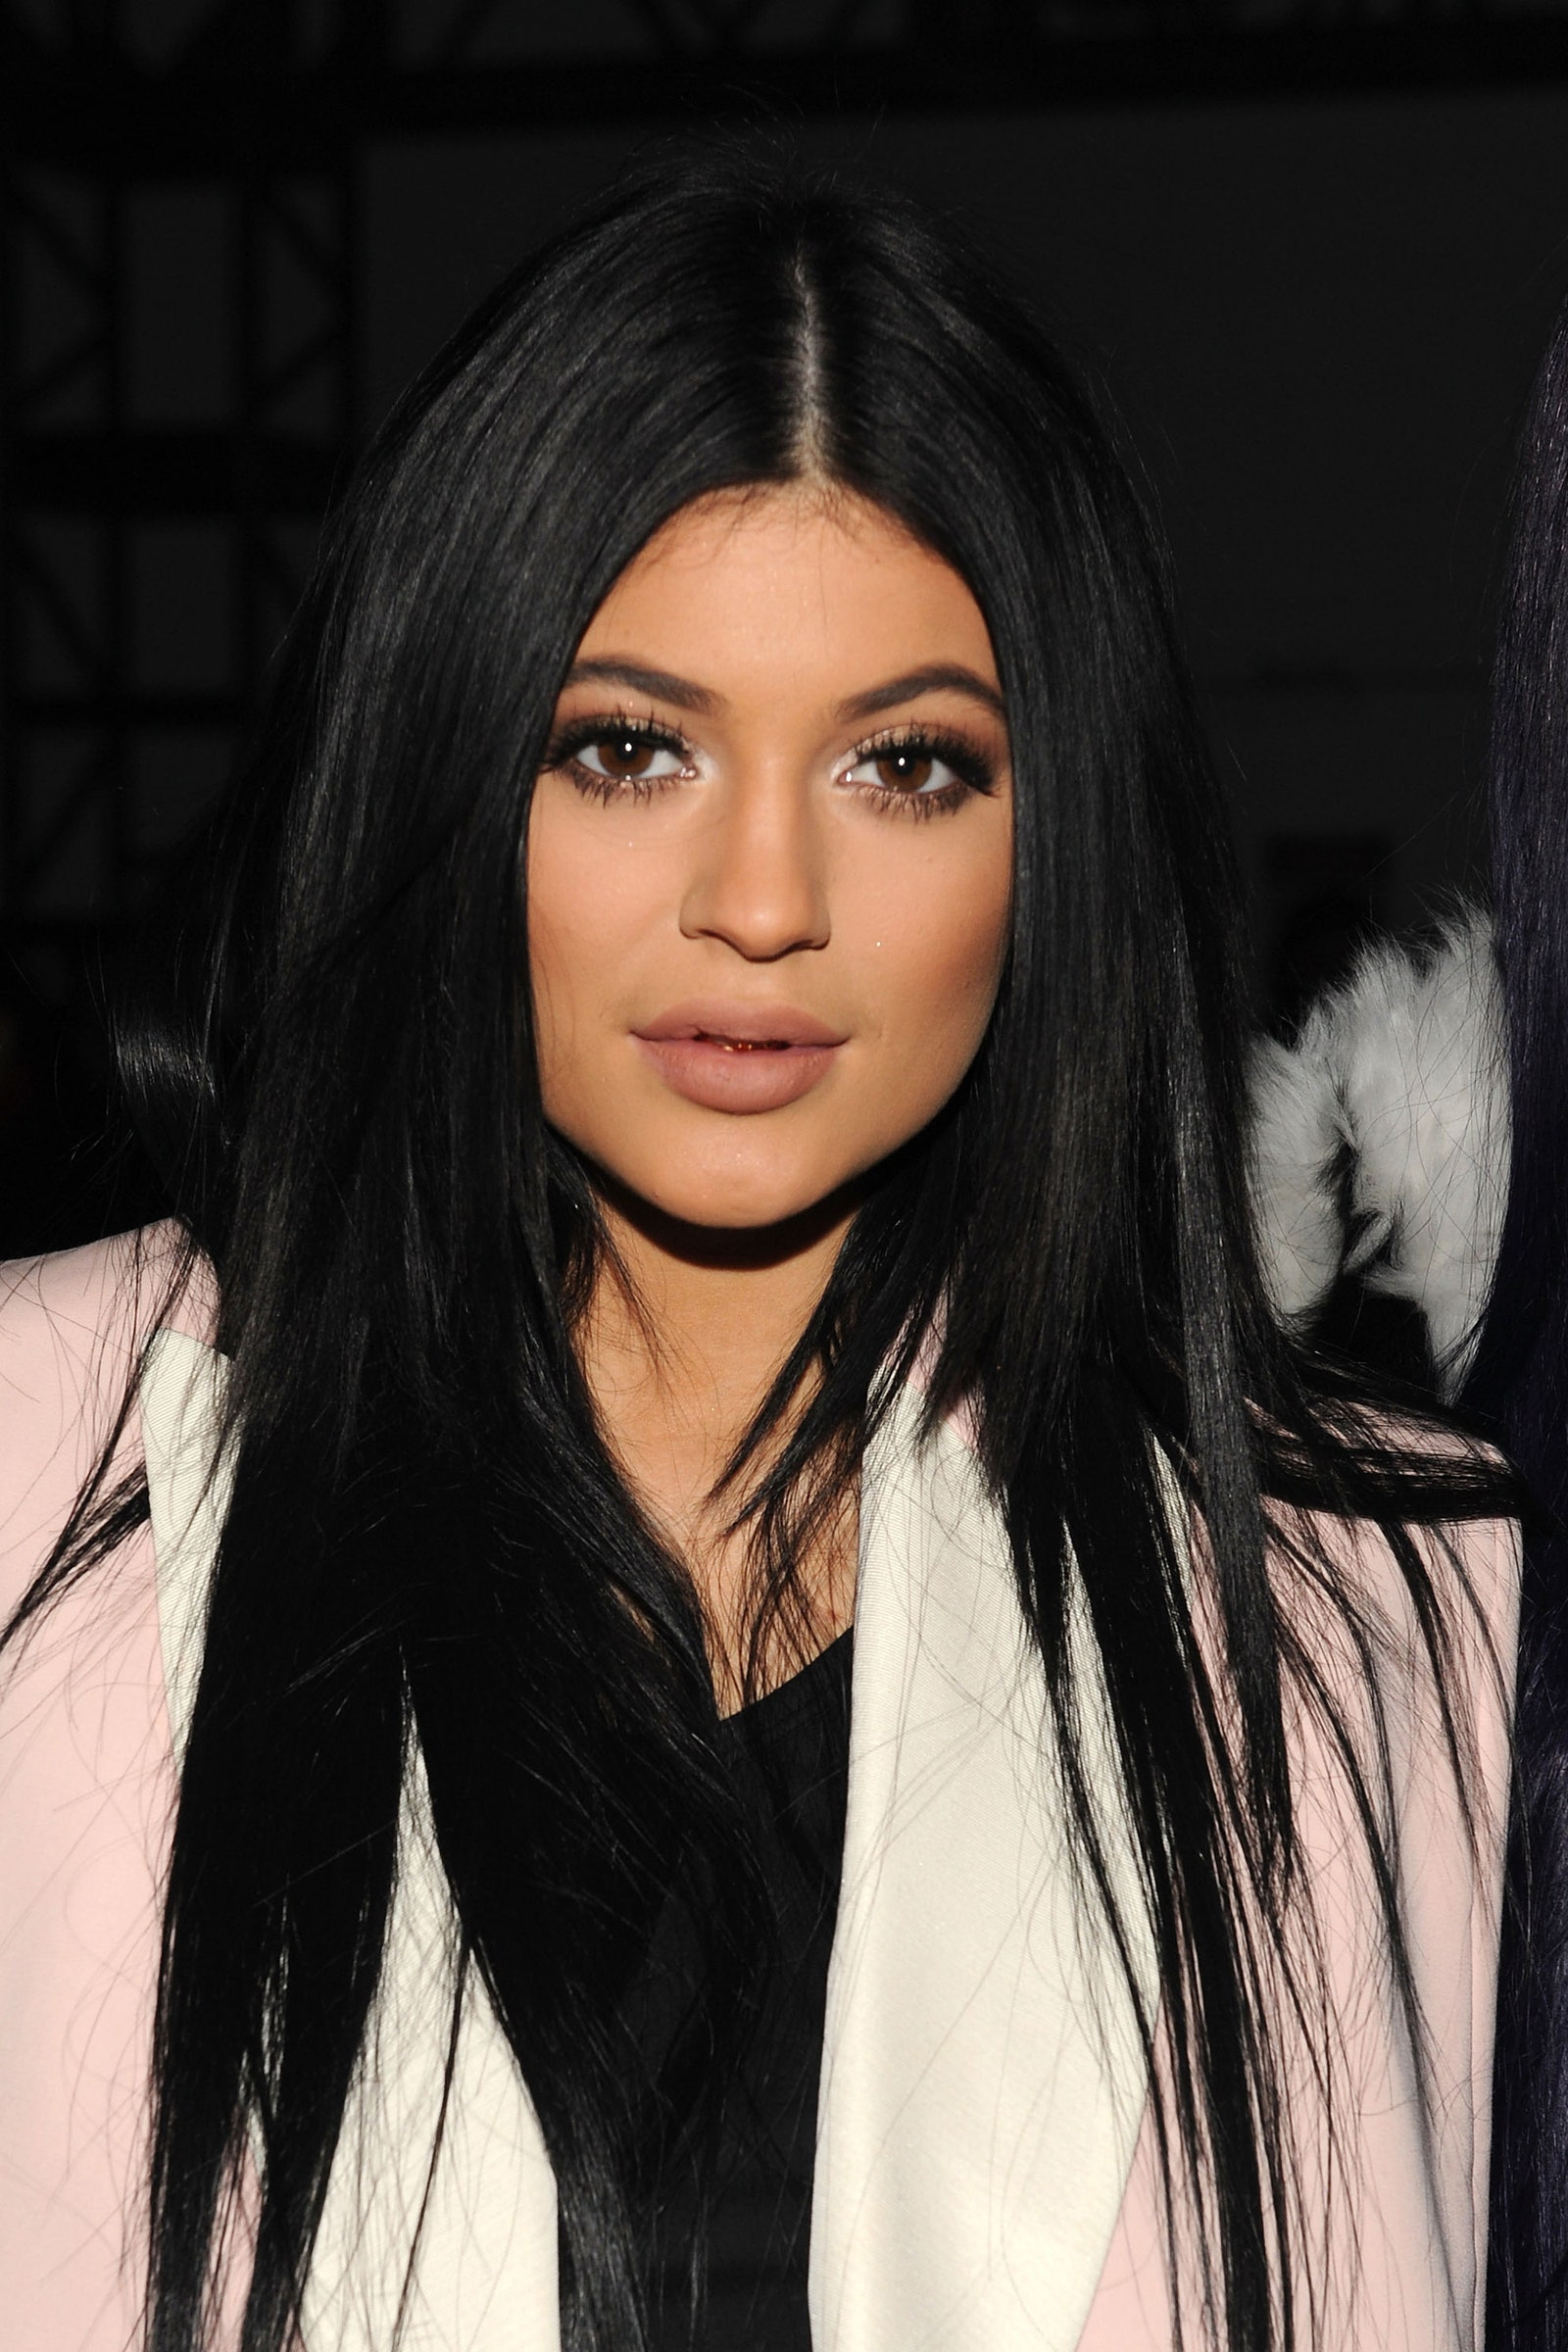 Kylie Jenner Hair Color Ideas – Which One Suits You?